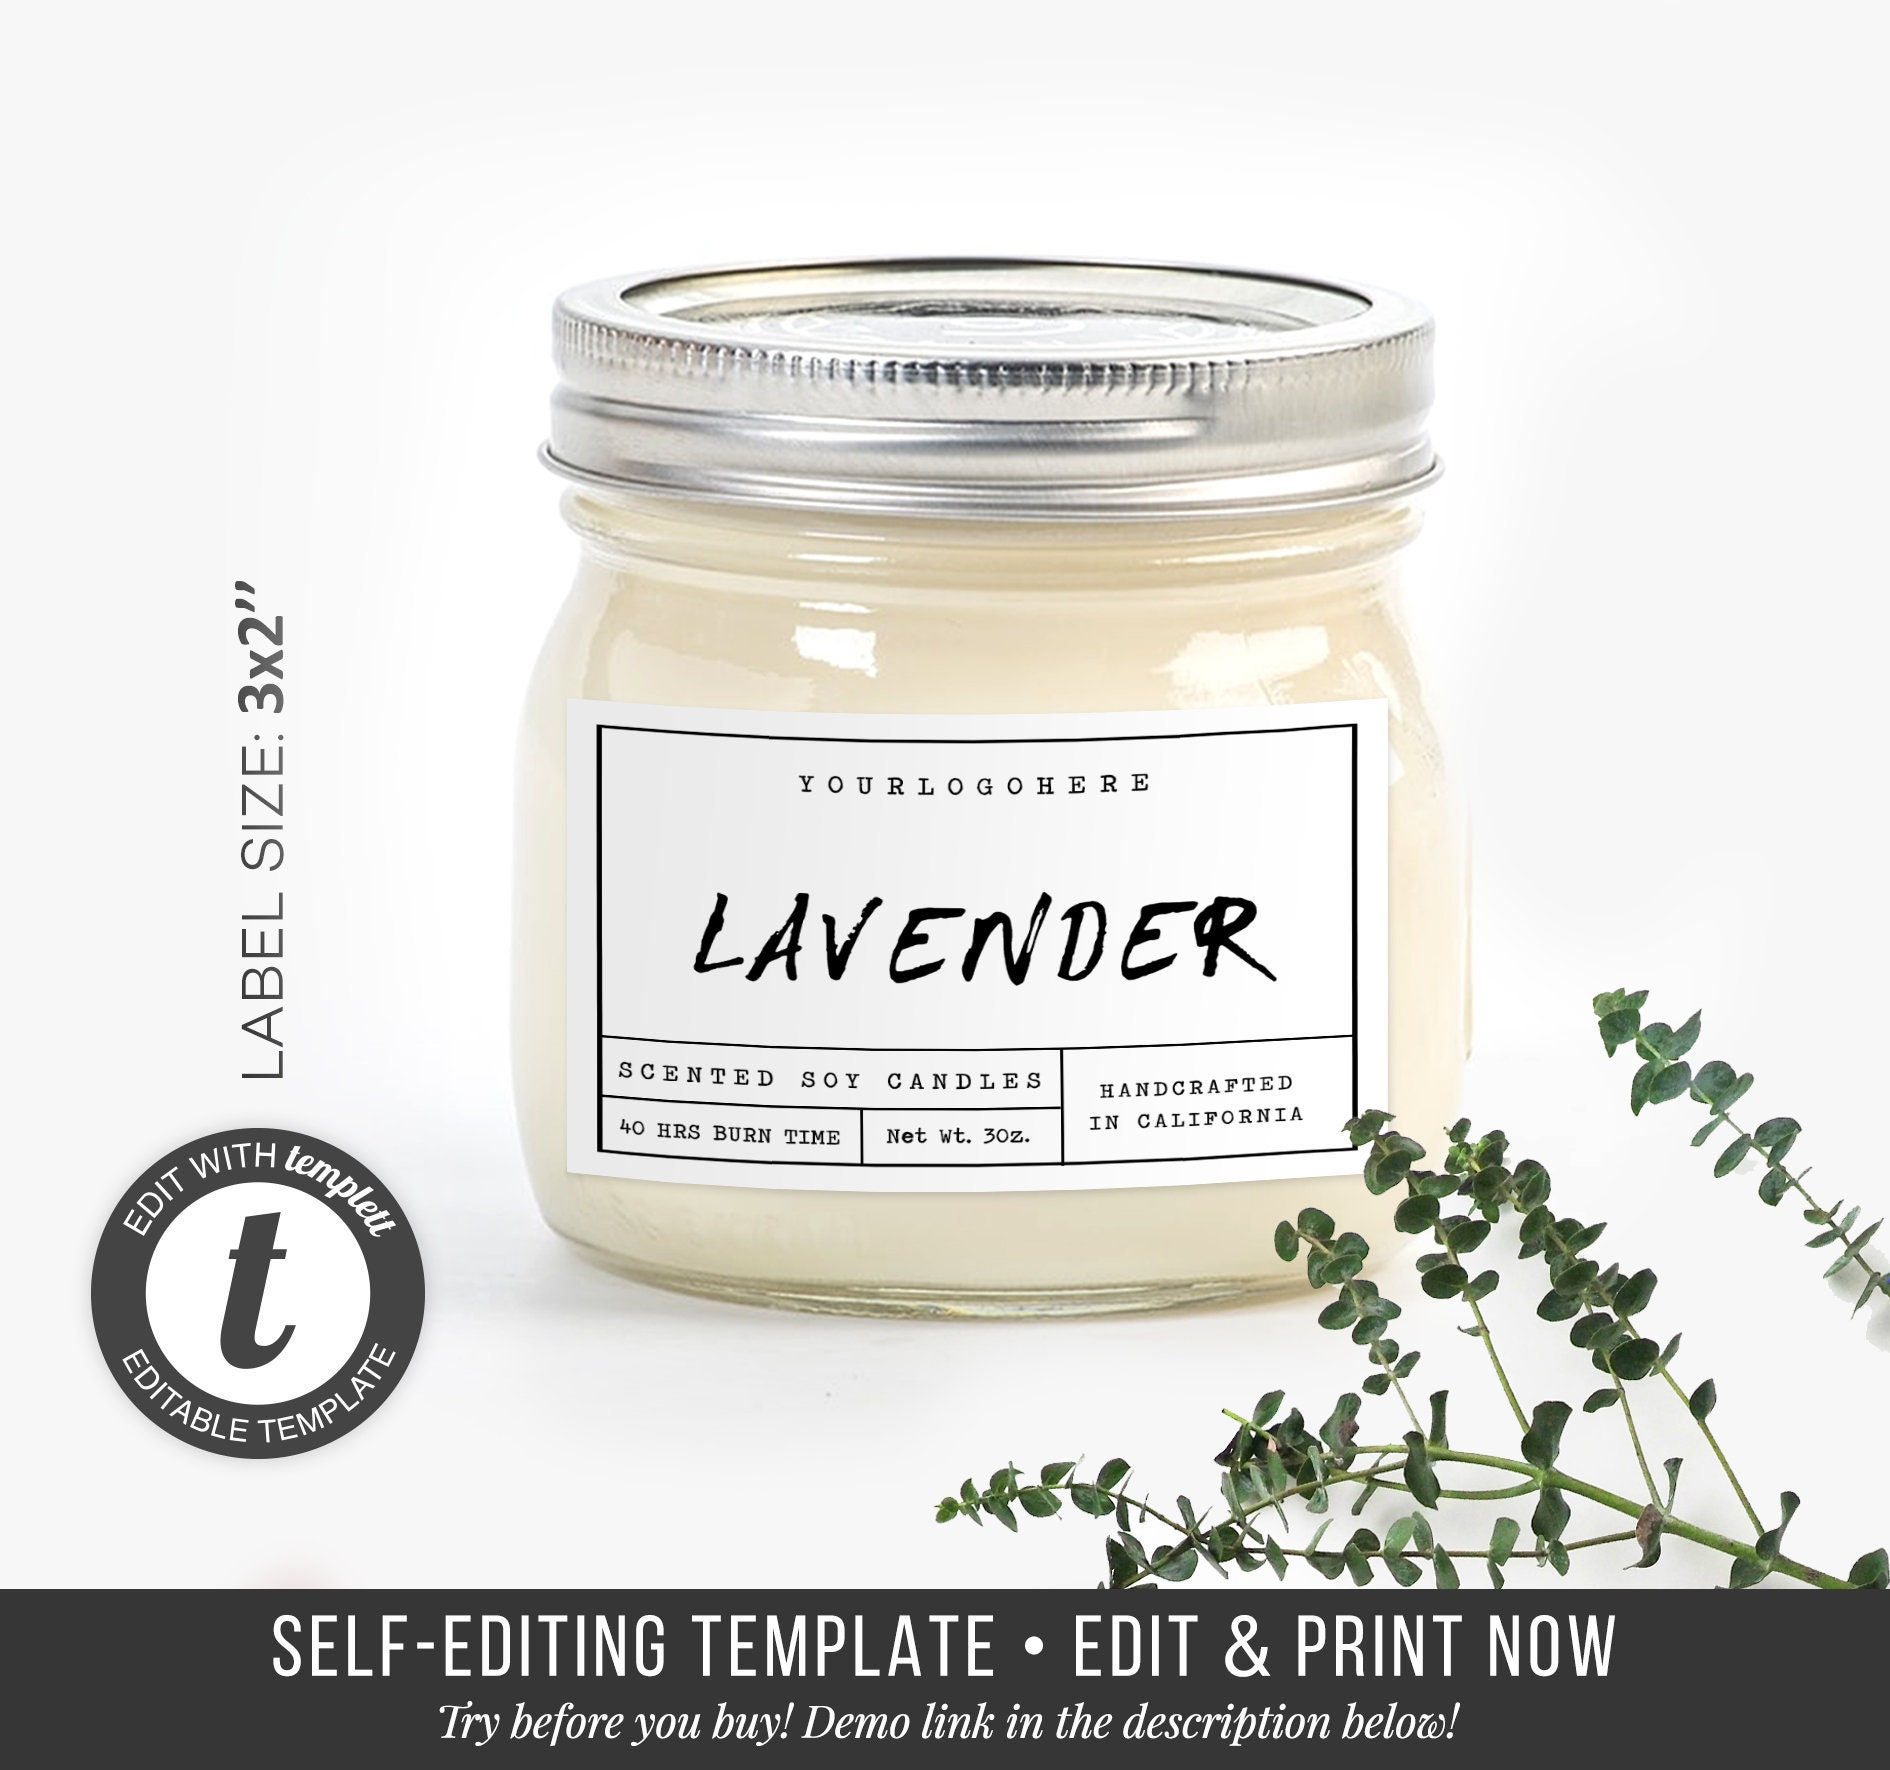 Custom candle labels candle label design editable product labels printables label templatte candle jar sticker diy label 3x2